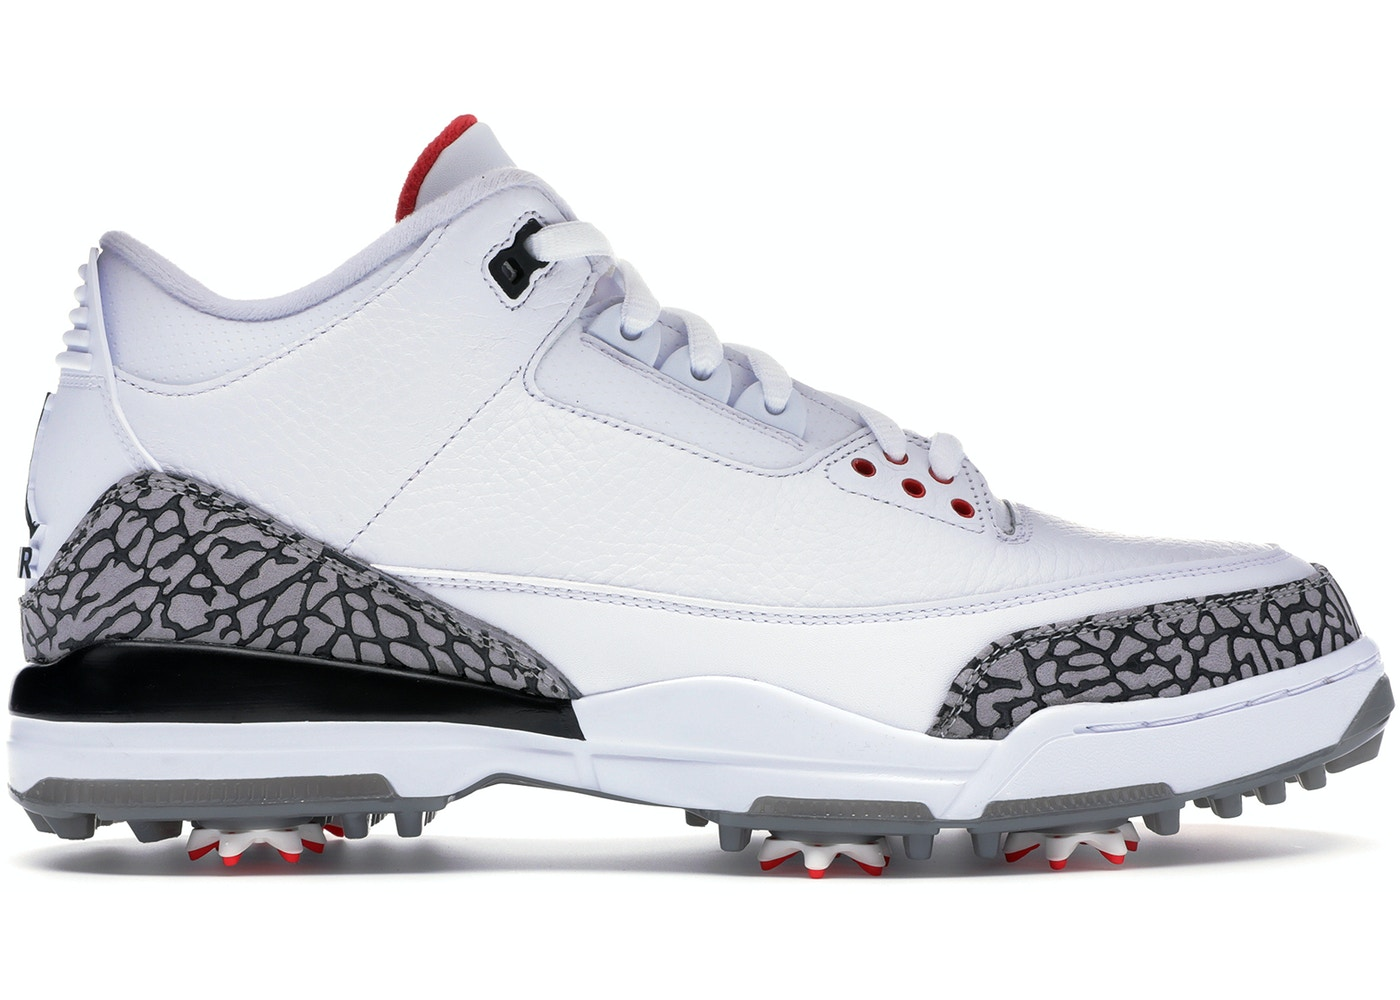 706615ef085 Jordan 3 Retro Golf White Cement